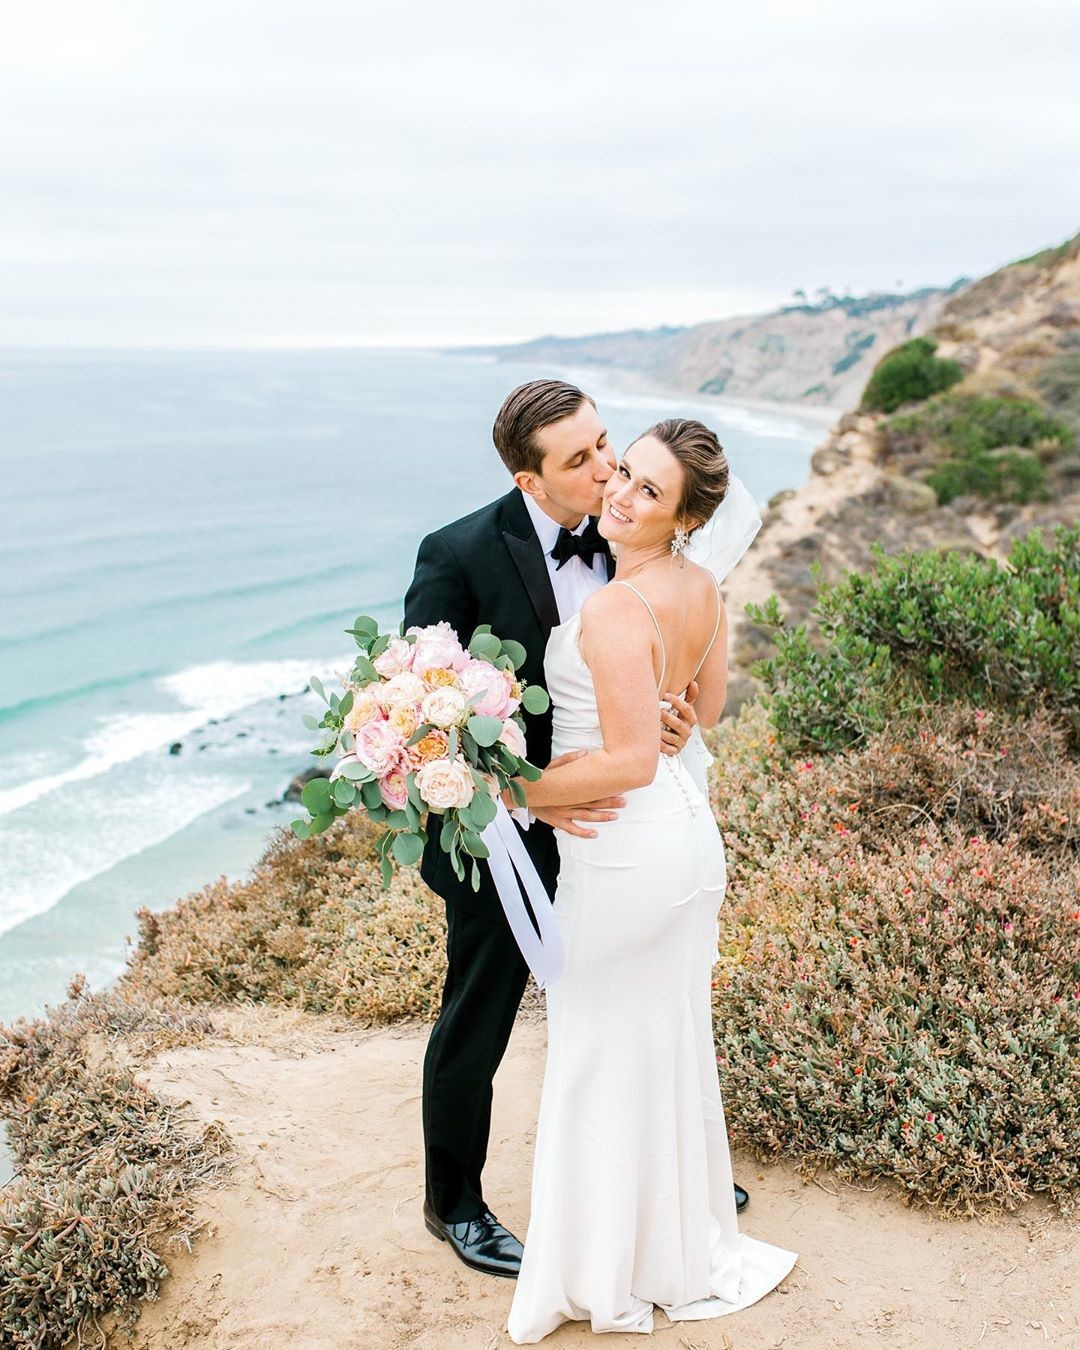 I just can't get over how STUNNING Kaily and Christer's San Diego wedding was!